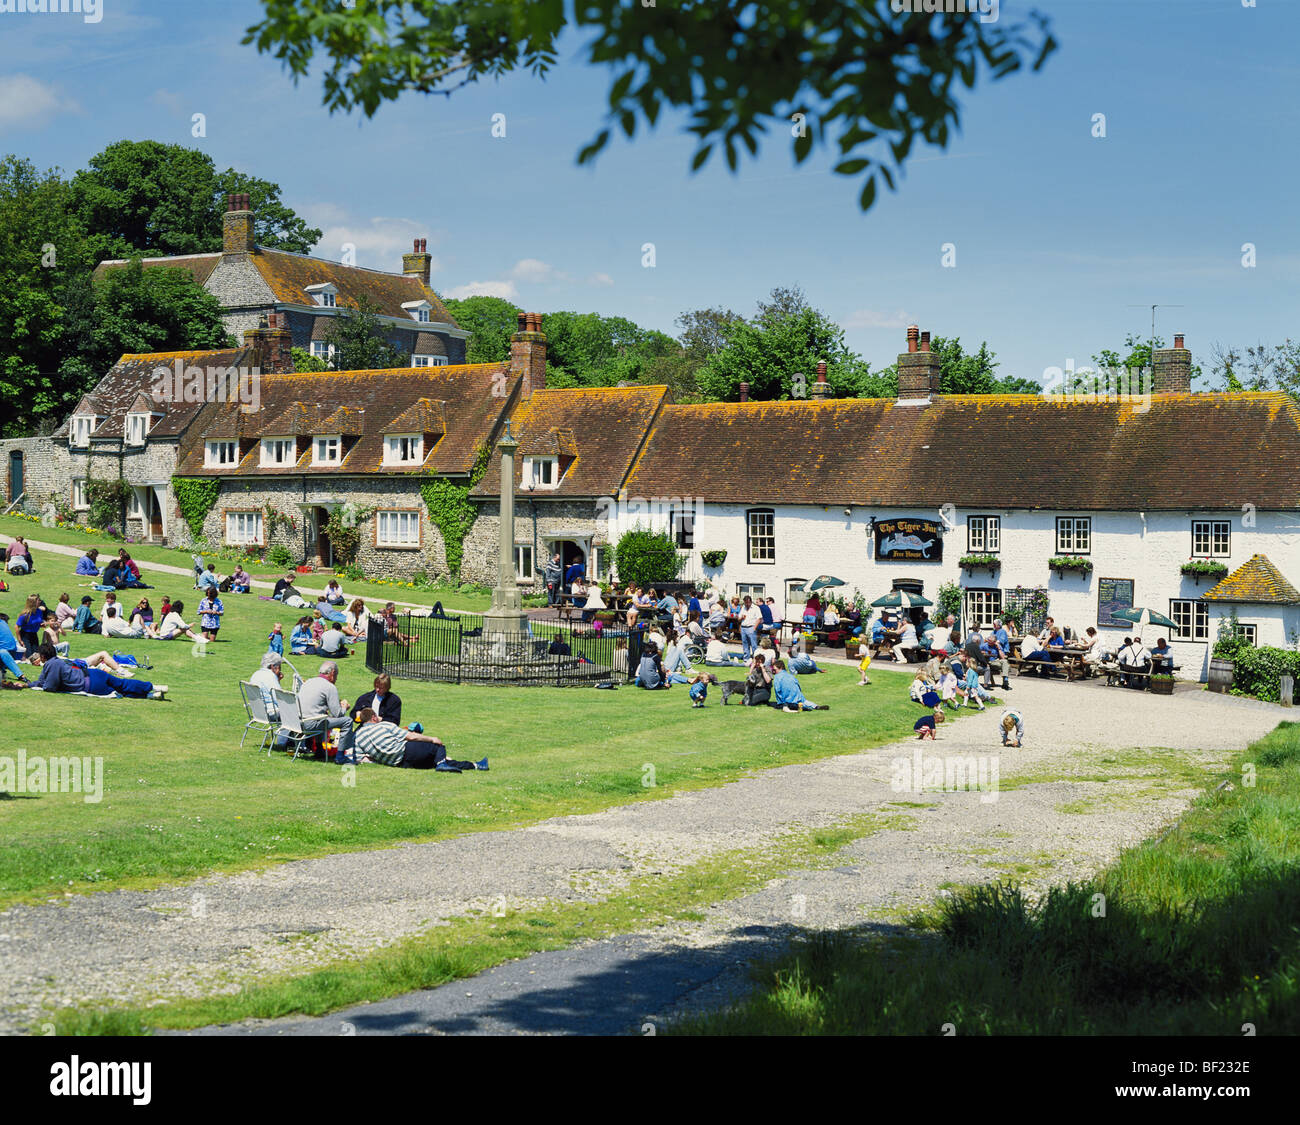 East Dean Village Green and the Tiger Inn, East Sussex, England, UK, GB - Stock Image